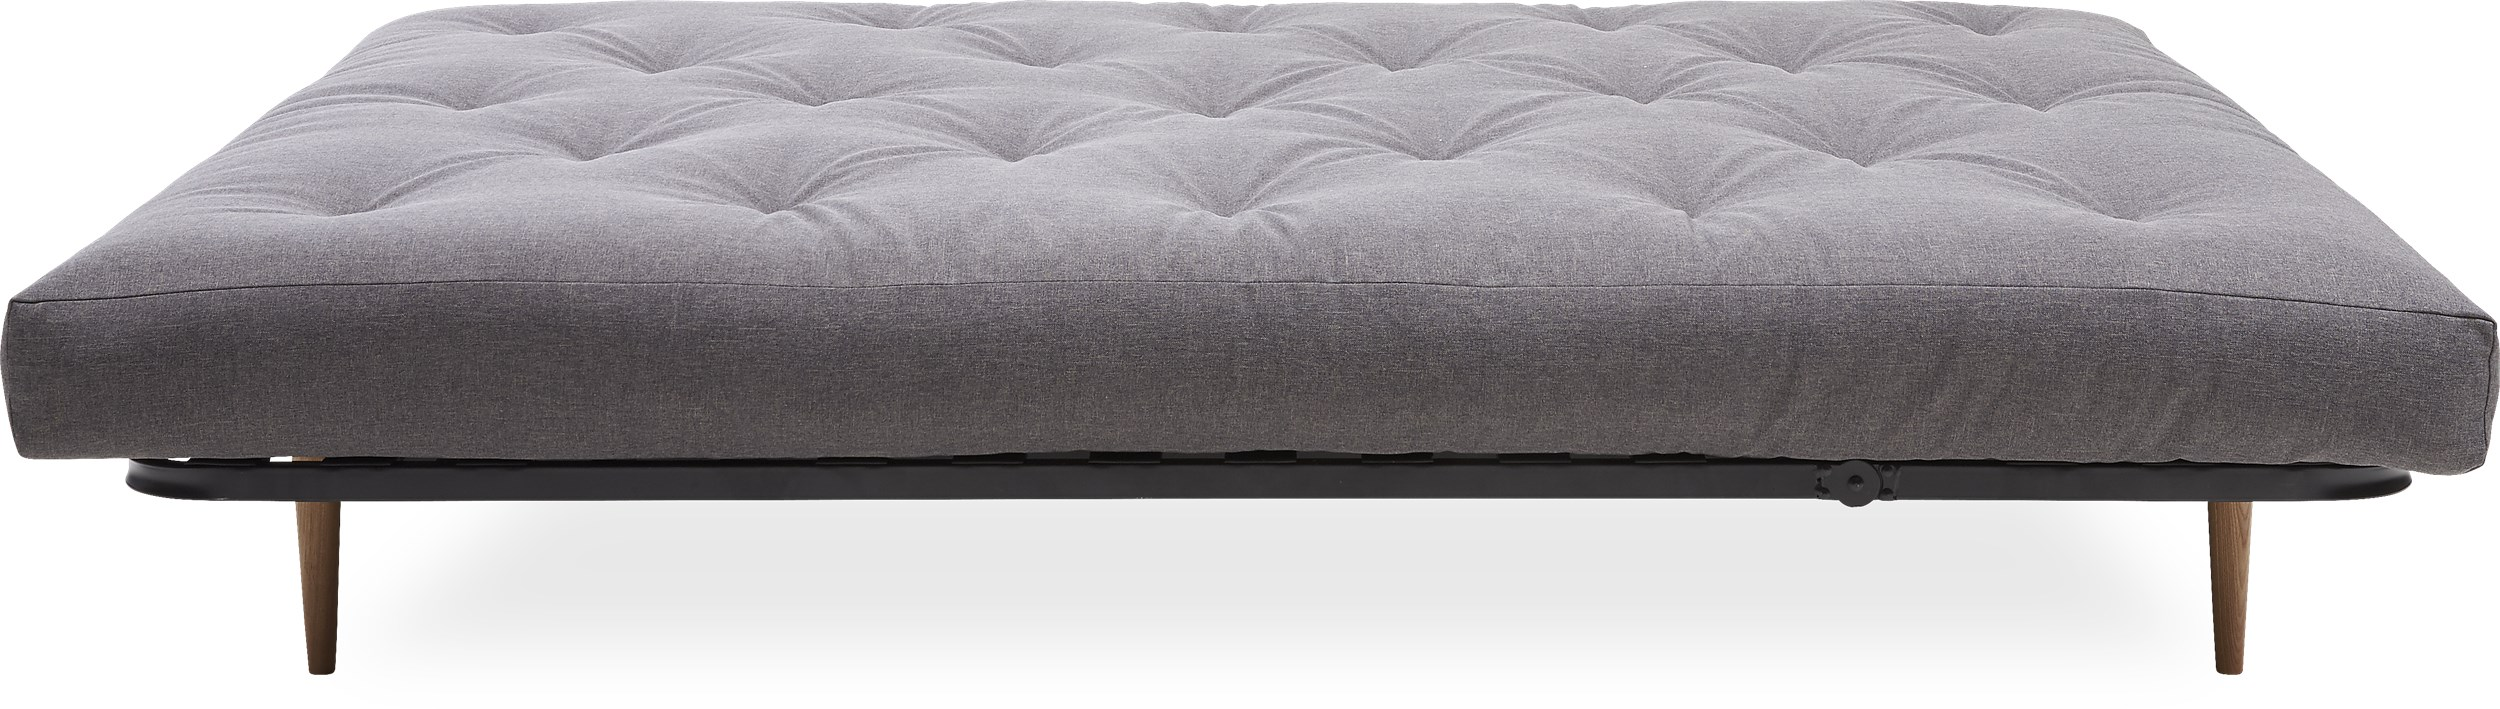 Innovation Living - Classic Round Sovesofa madras - Flashtex 216 Dark Grey og ekskl. Ben